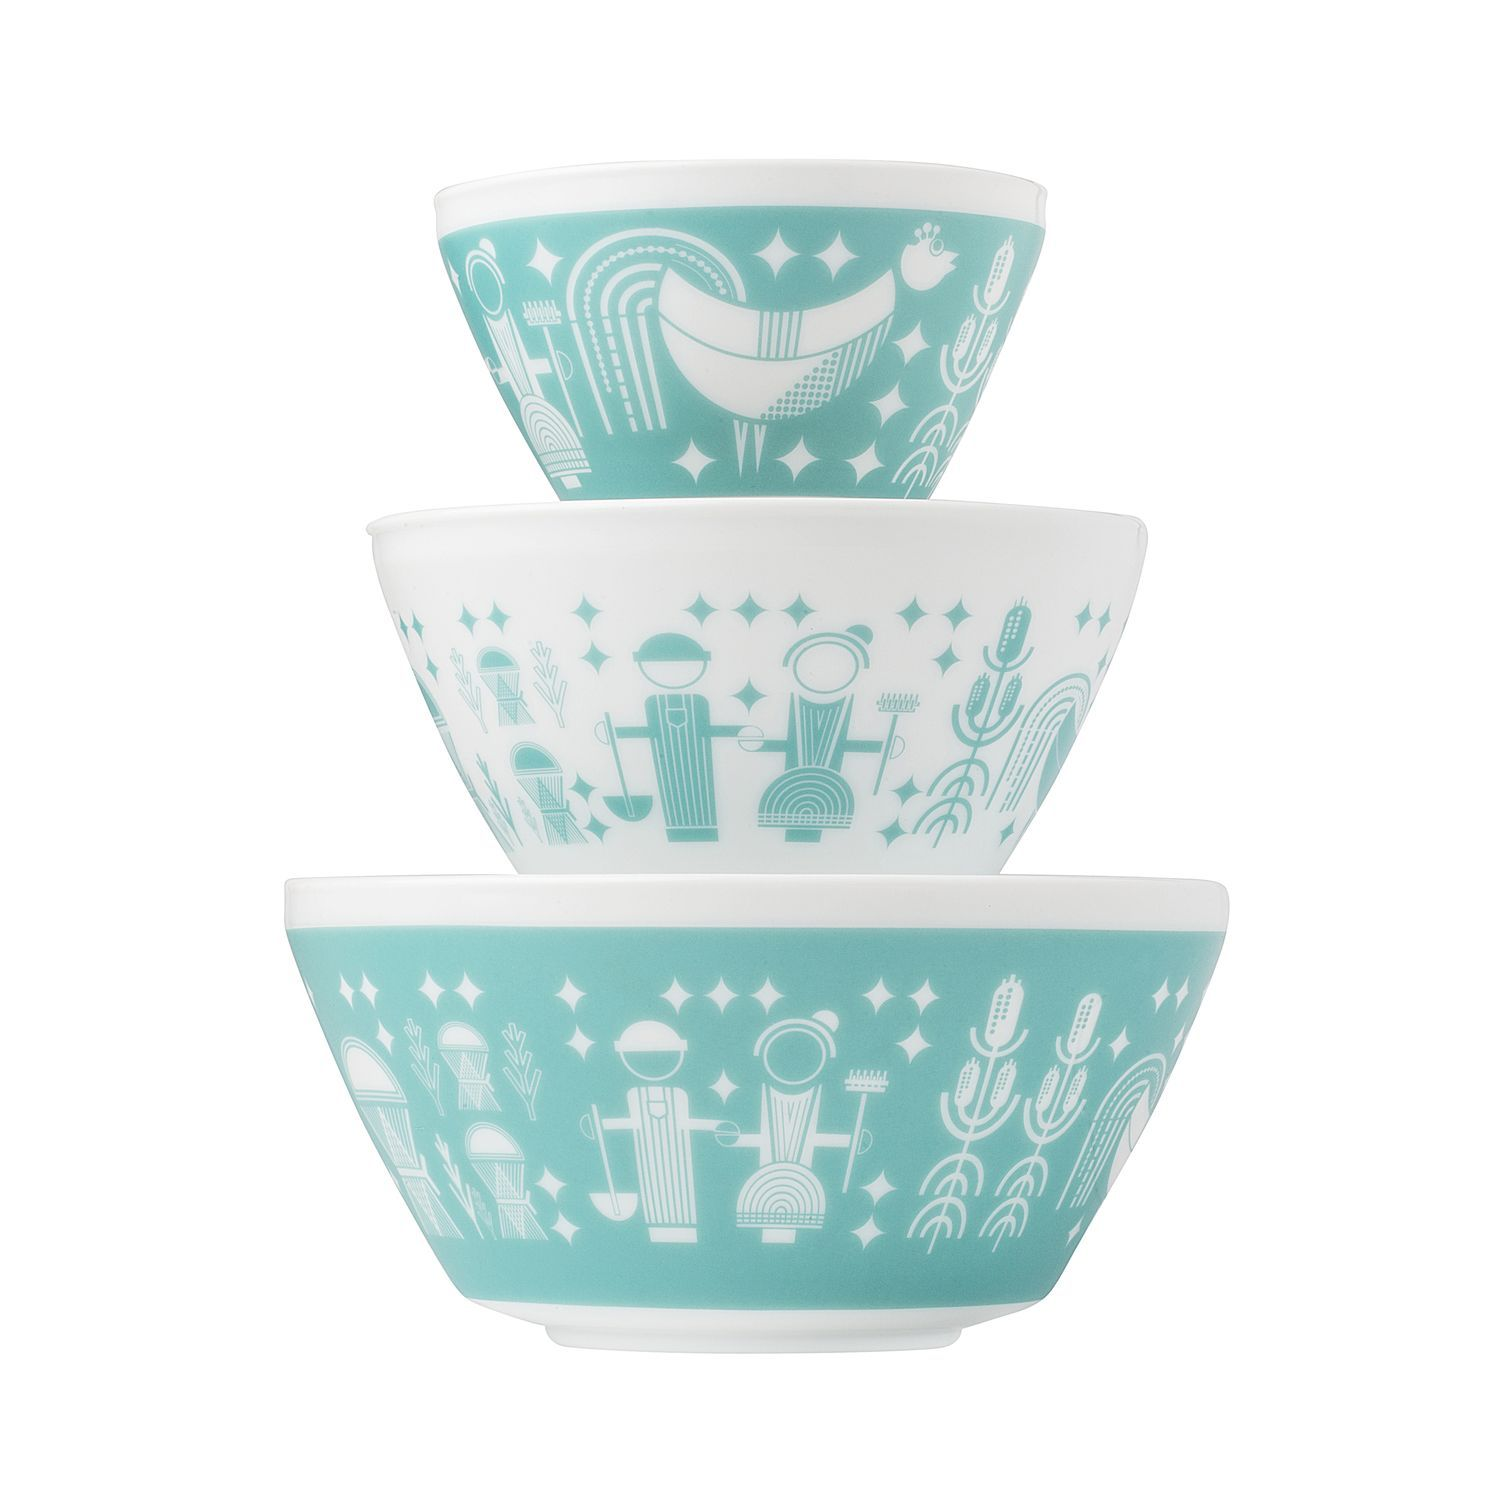 Vintage Charm™ Rise N\' Shine 3-Pc Mixing Bowl Set, inspired by Pyrex ...